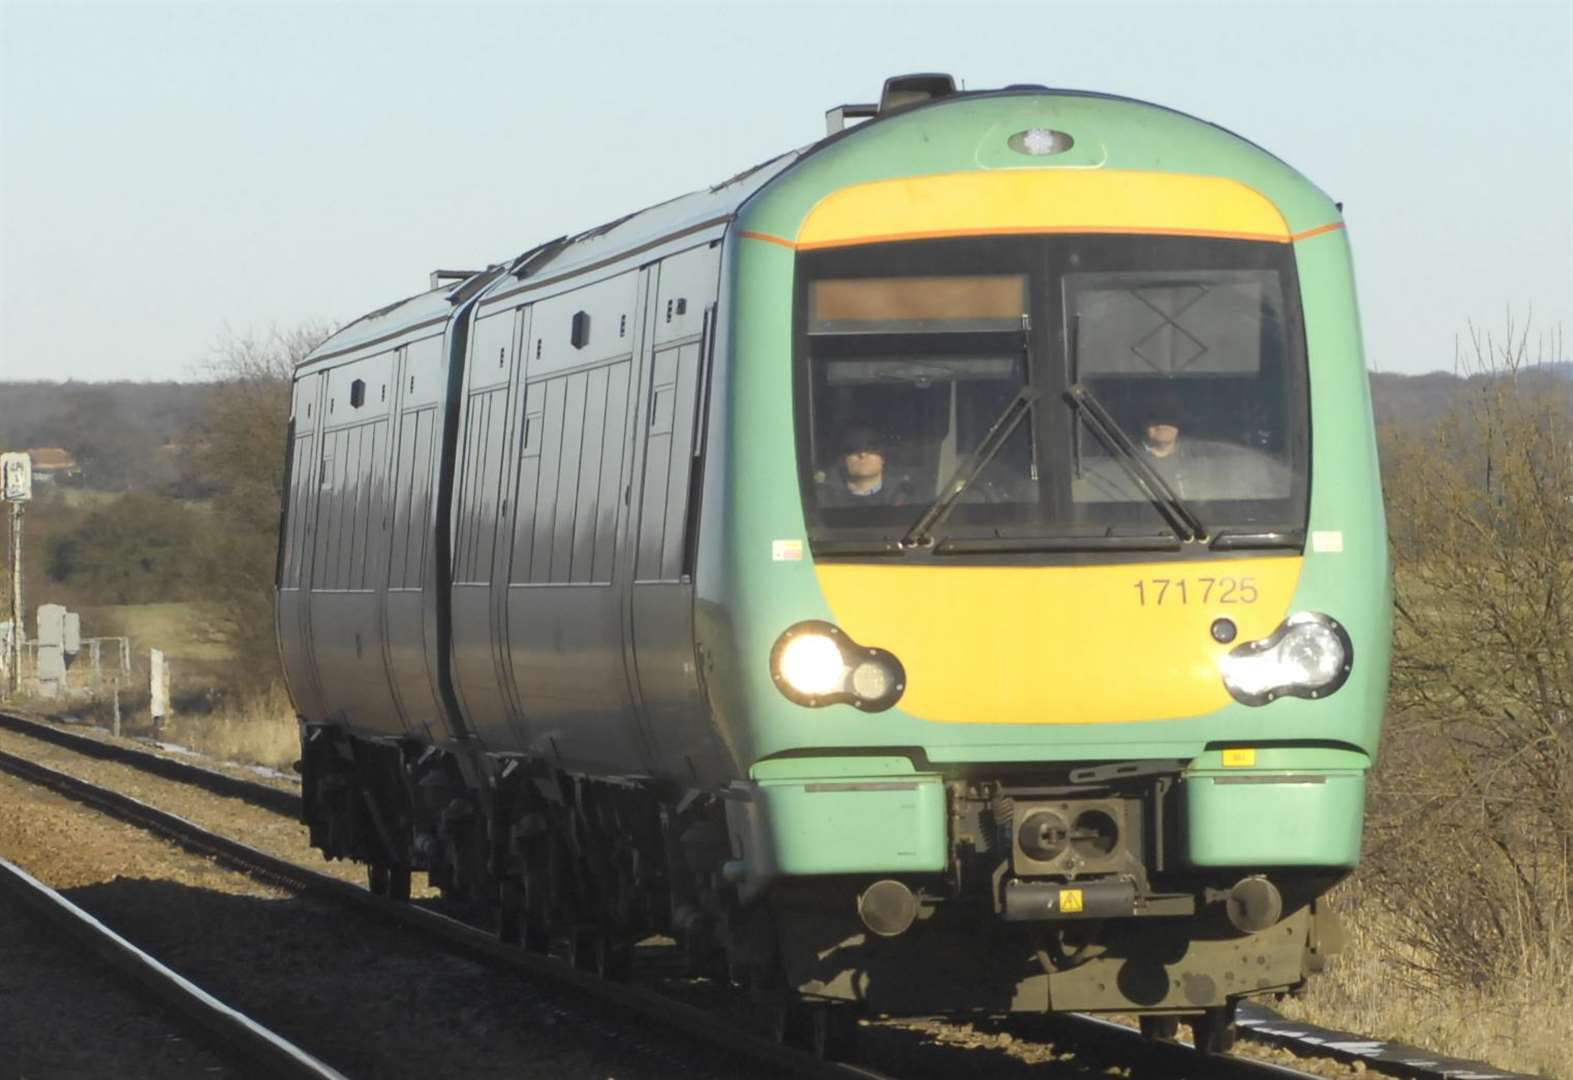 Southern trains disruption continues